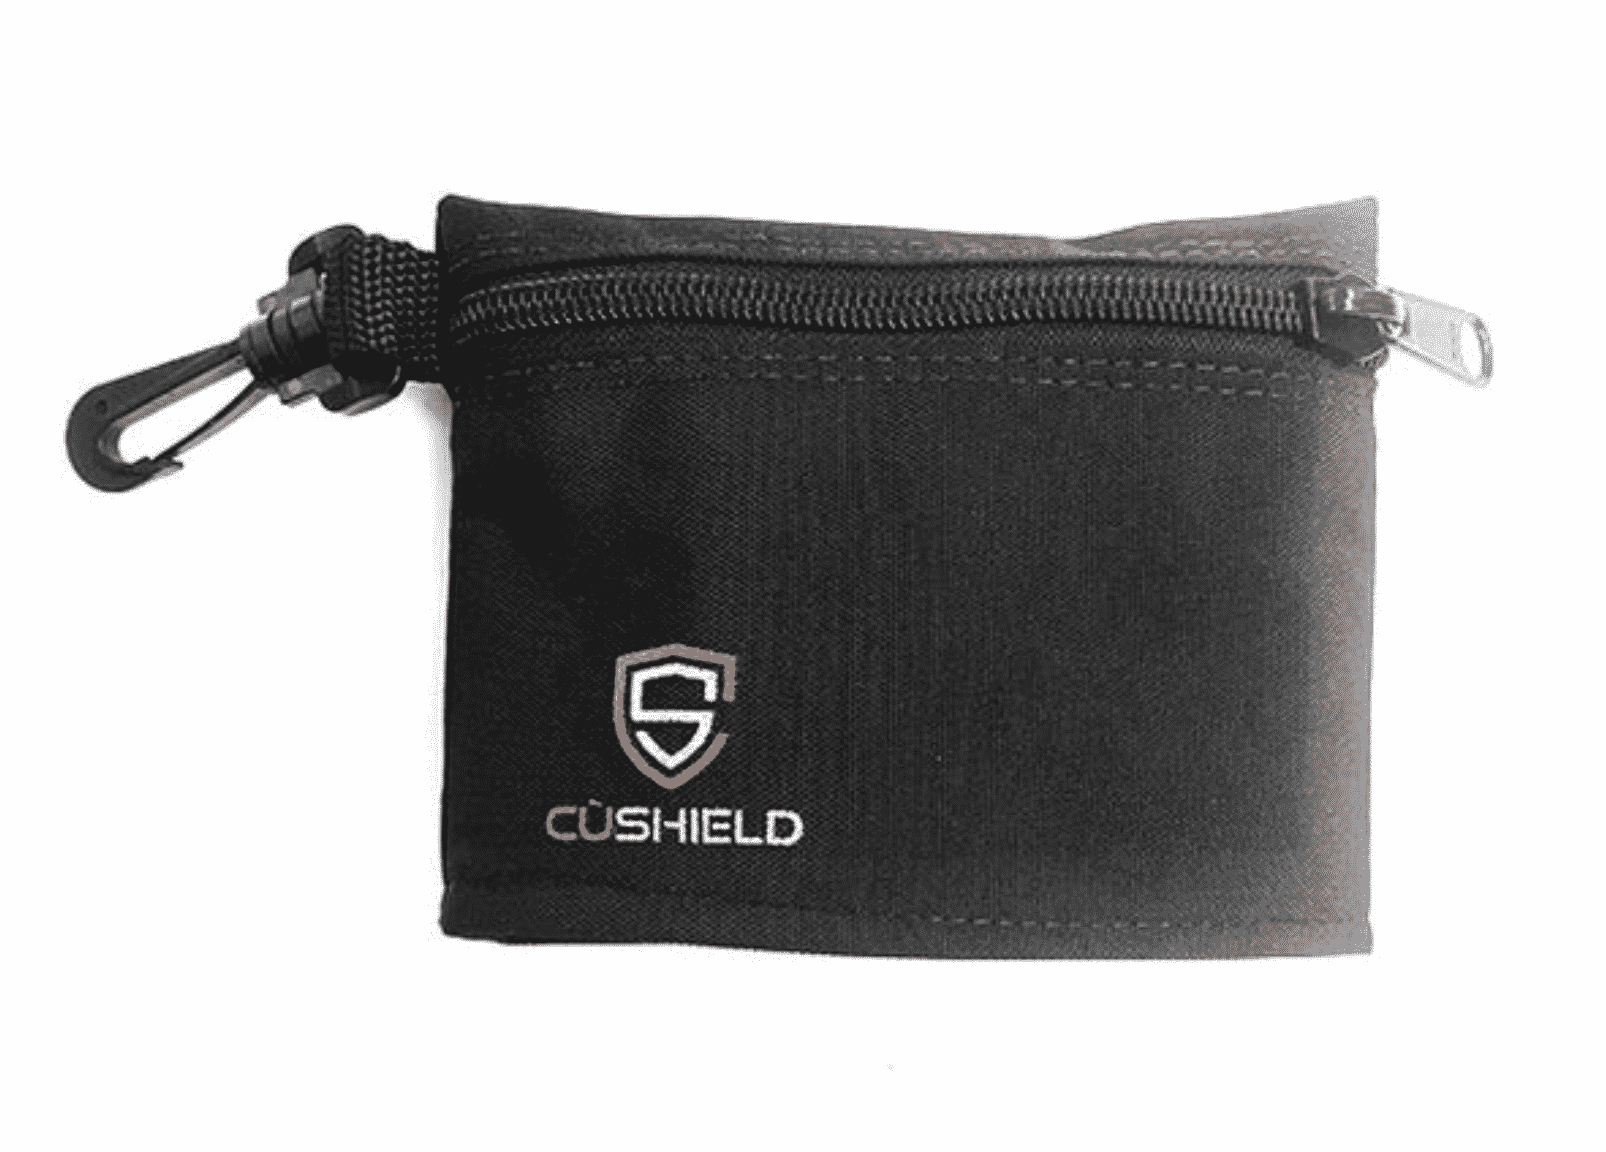 100% Copper-Based Pouch Glove